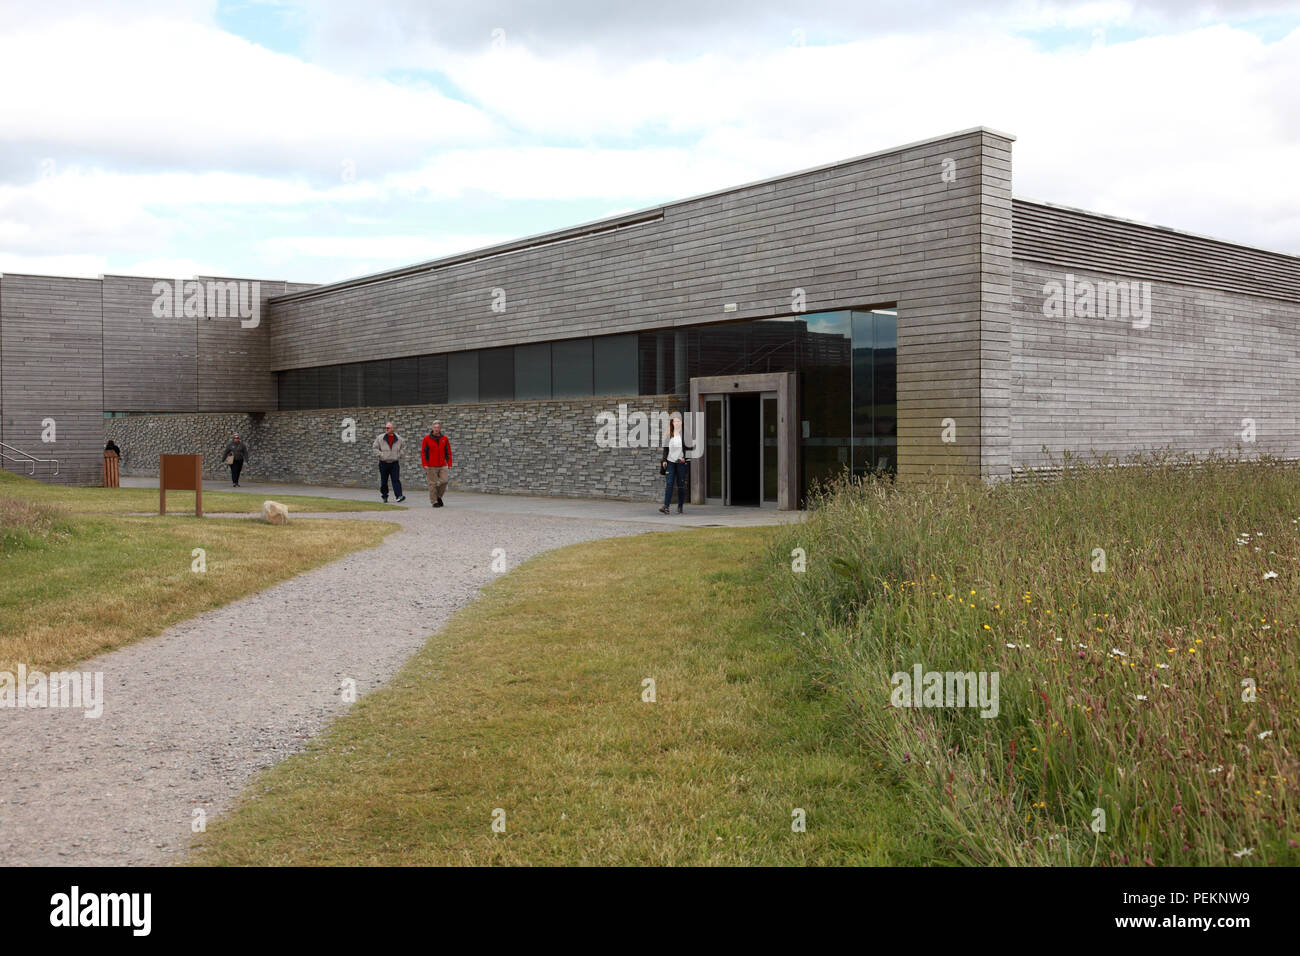 The visitor centre at Culloden where the Jacobite forces of Bonnie Prince Charlie lost the battle in 1746 - Stock Image